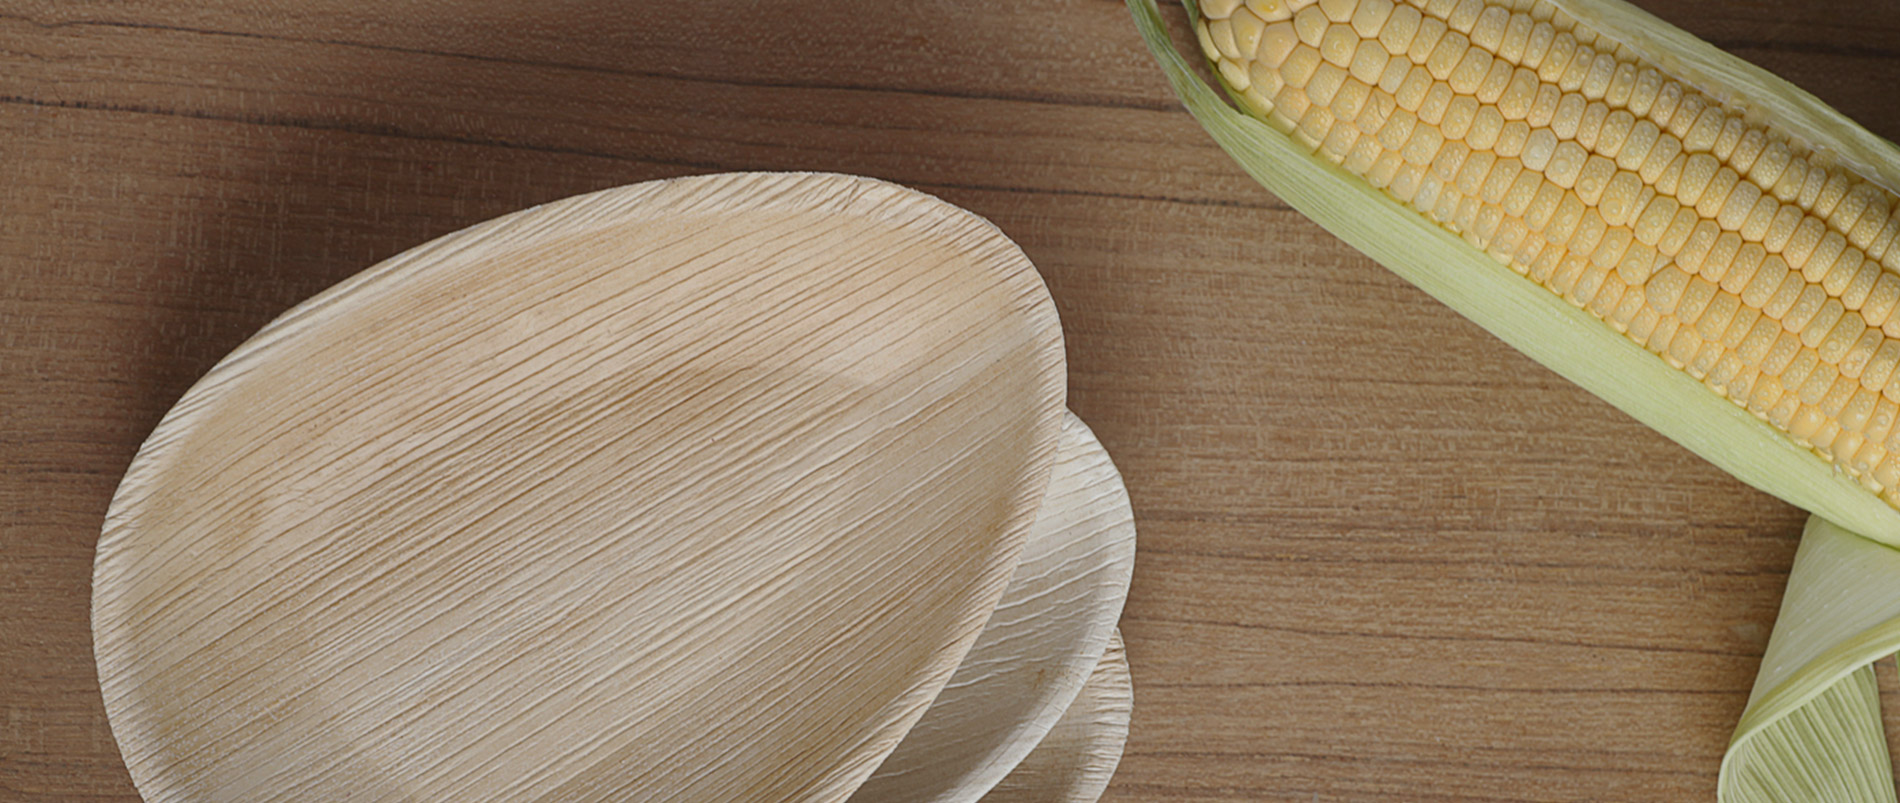 Eco-friendly. & Eco-friendly Leaf Plates - Buy Online | Disposable Areca Leaf Plate ...